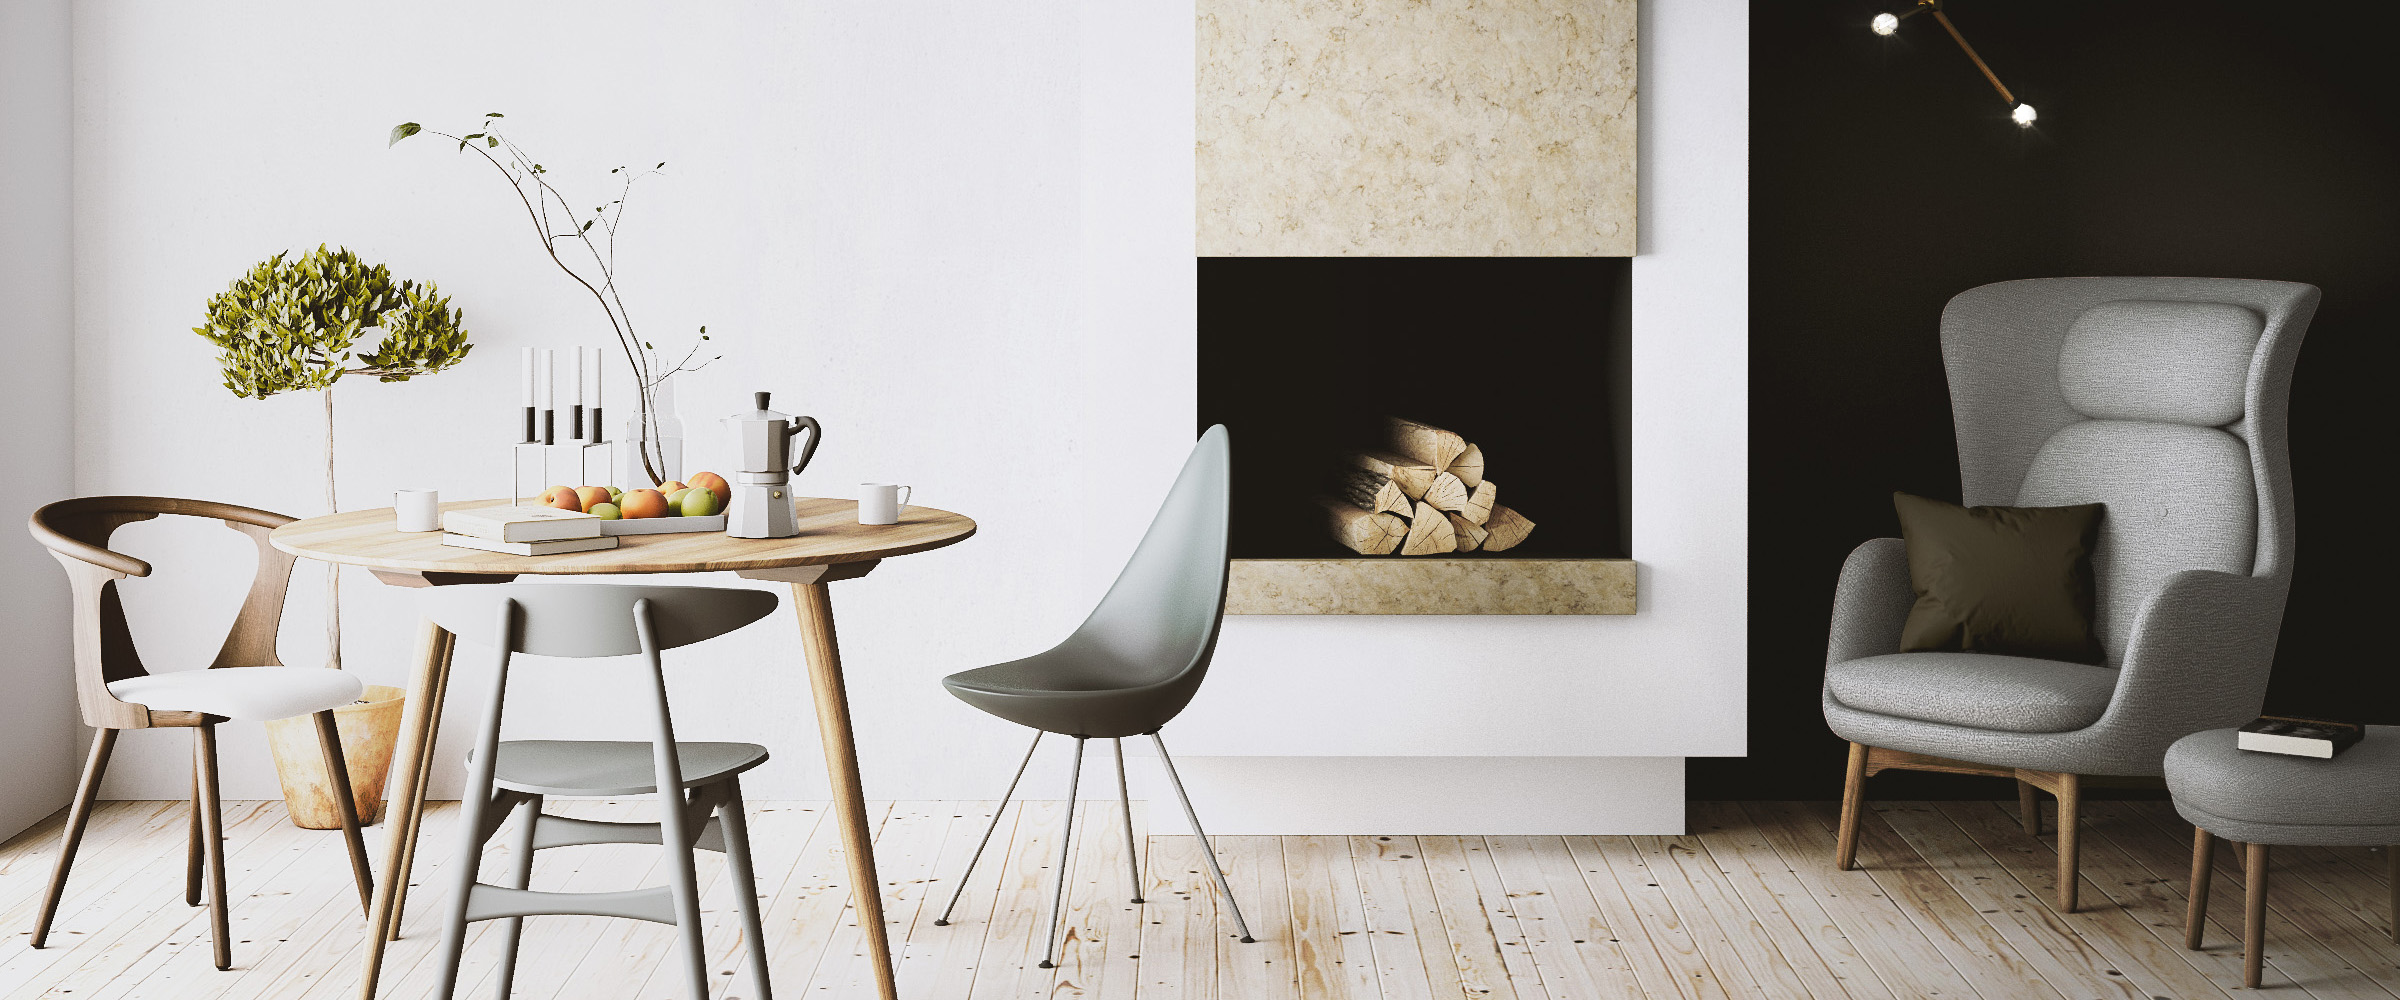 Scandinavian_interior_Yafaray_crop